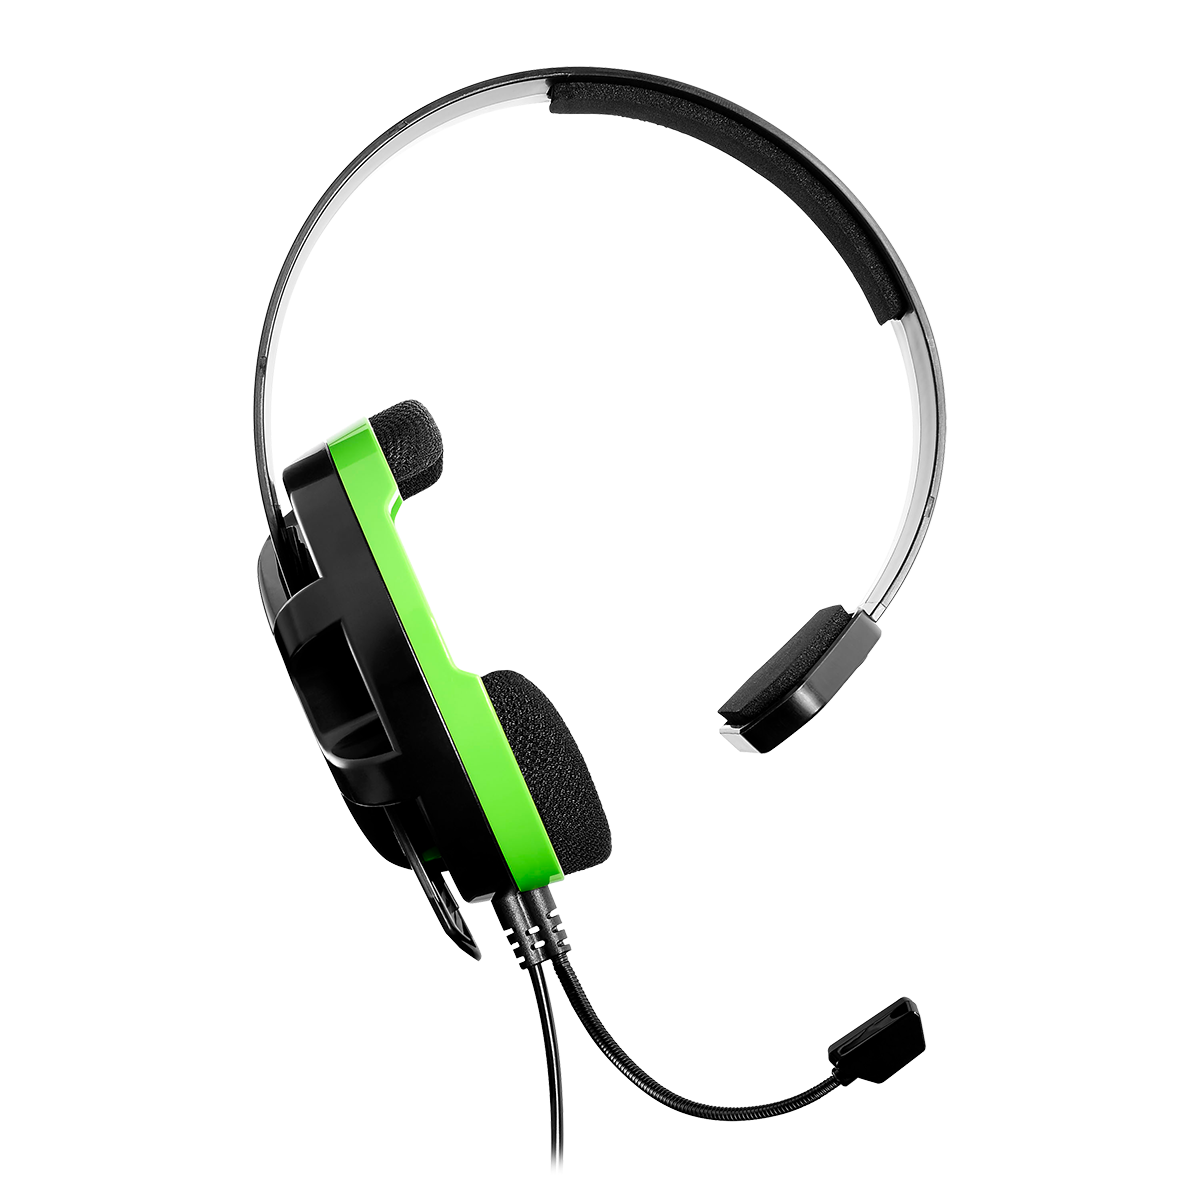 Recon Chat Headset for Xbox One - Lightweight \u0026 Reversible \u2013 Turtle